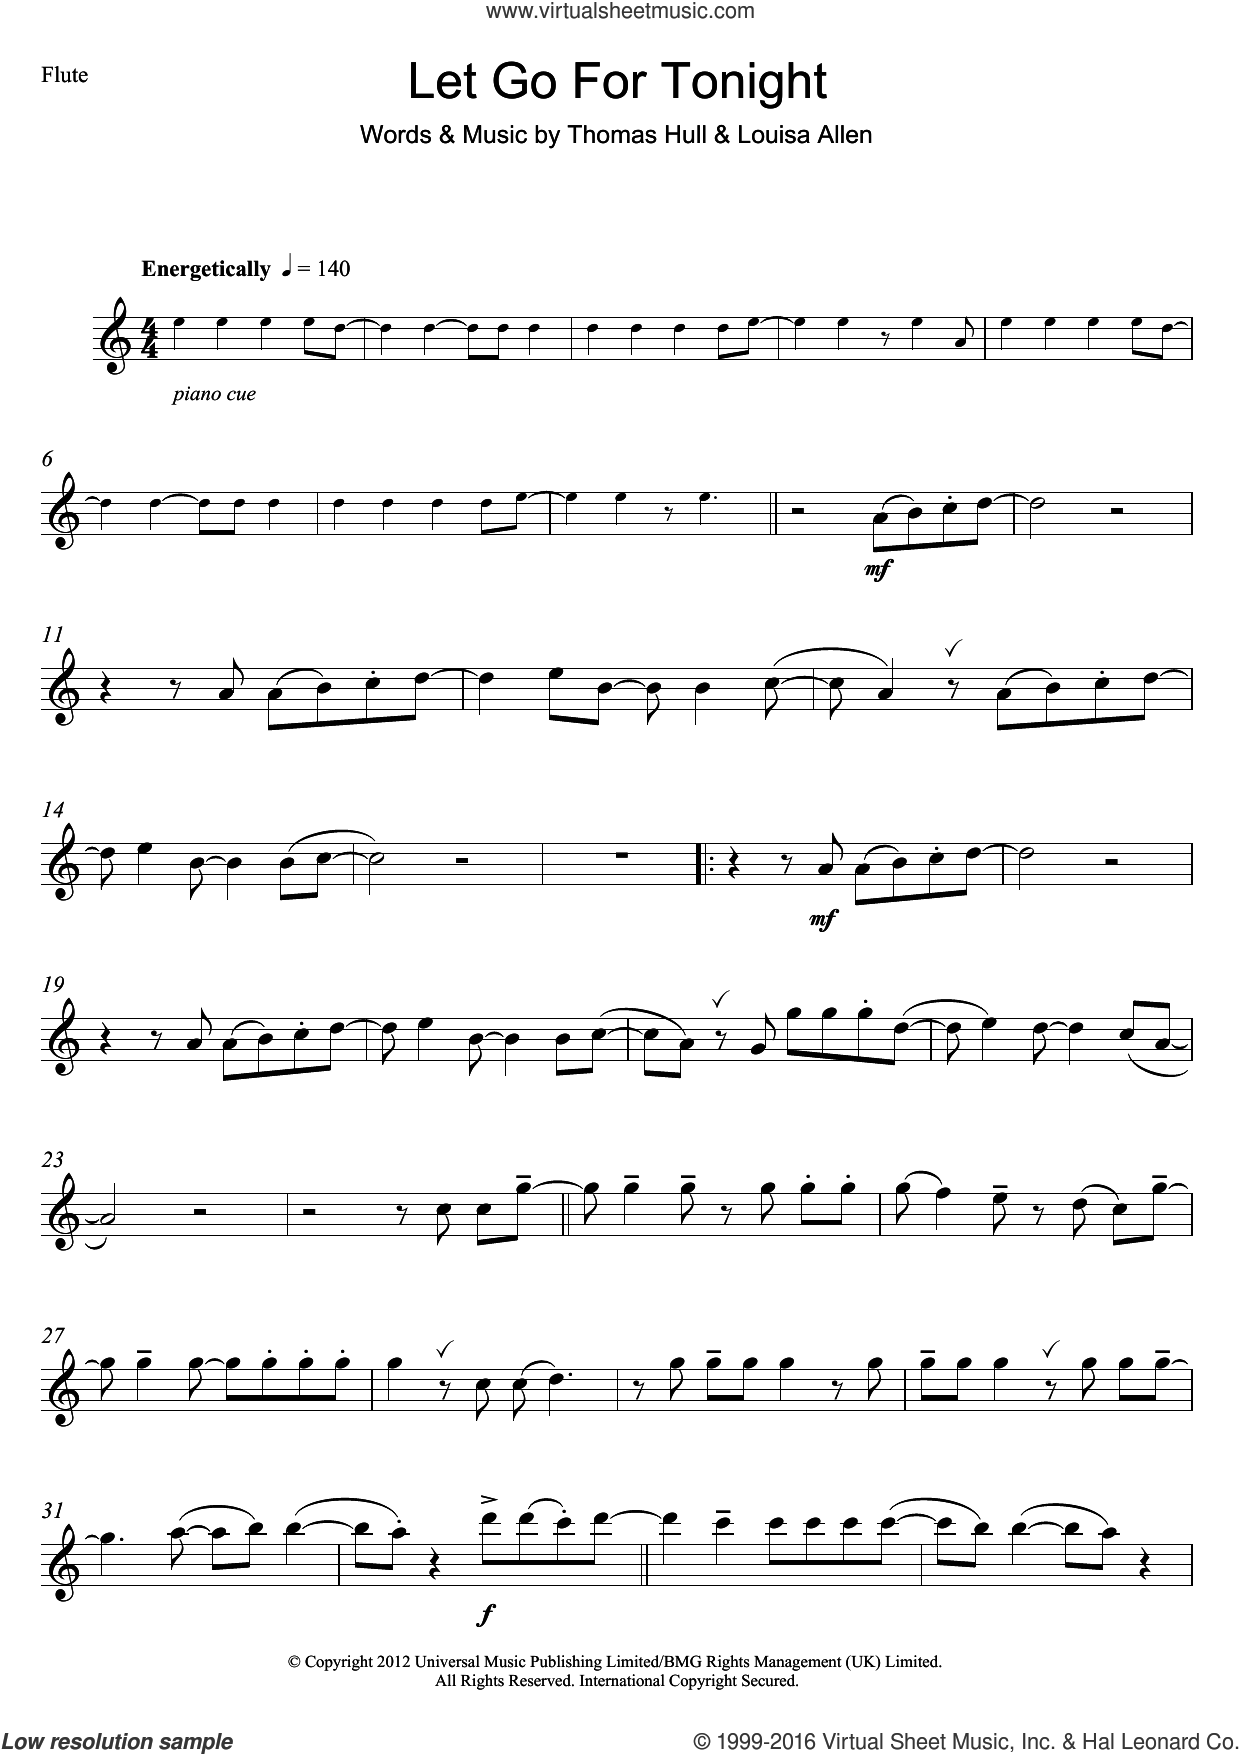 Let Go For Tonight sheet music for flute solo by Tom Hull